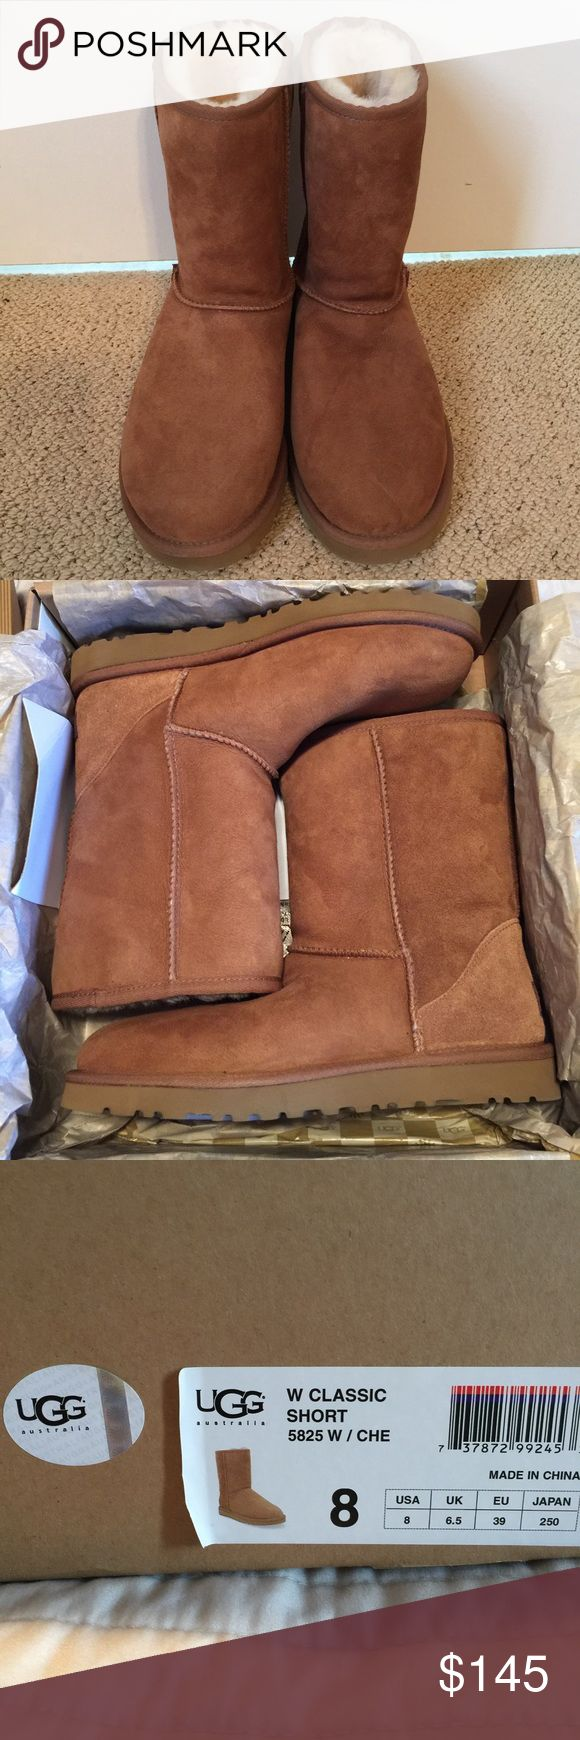 UGG Classic Short Boot Price FIRM • NIB Originally purchased fr Nordstrom. UGG Shoes Ankle Boots & Booties